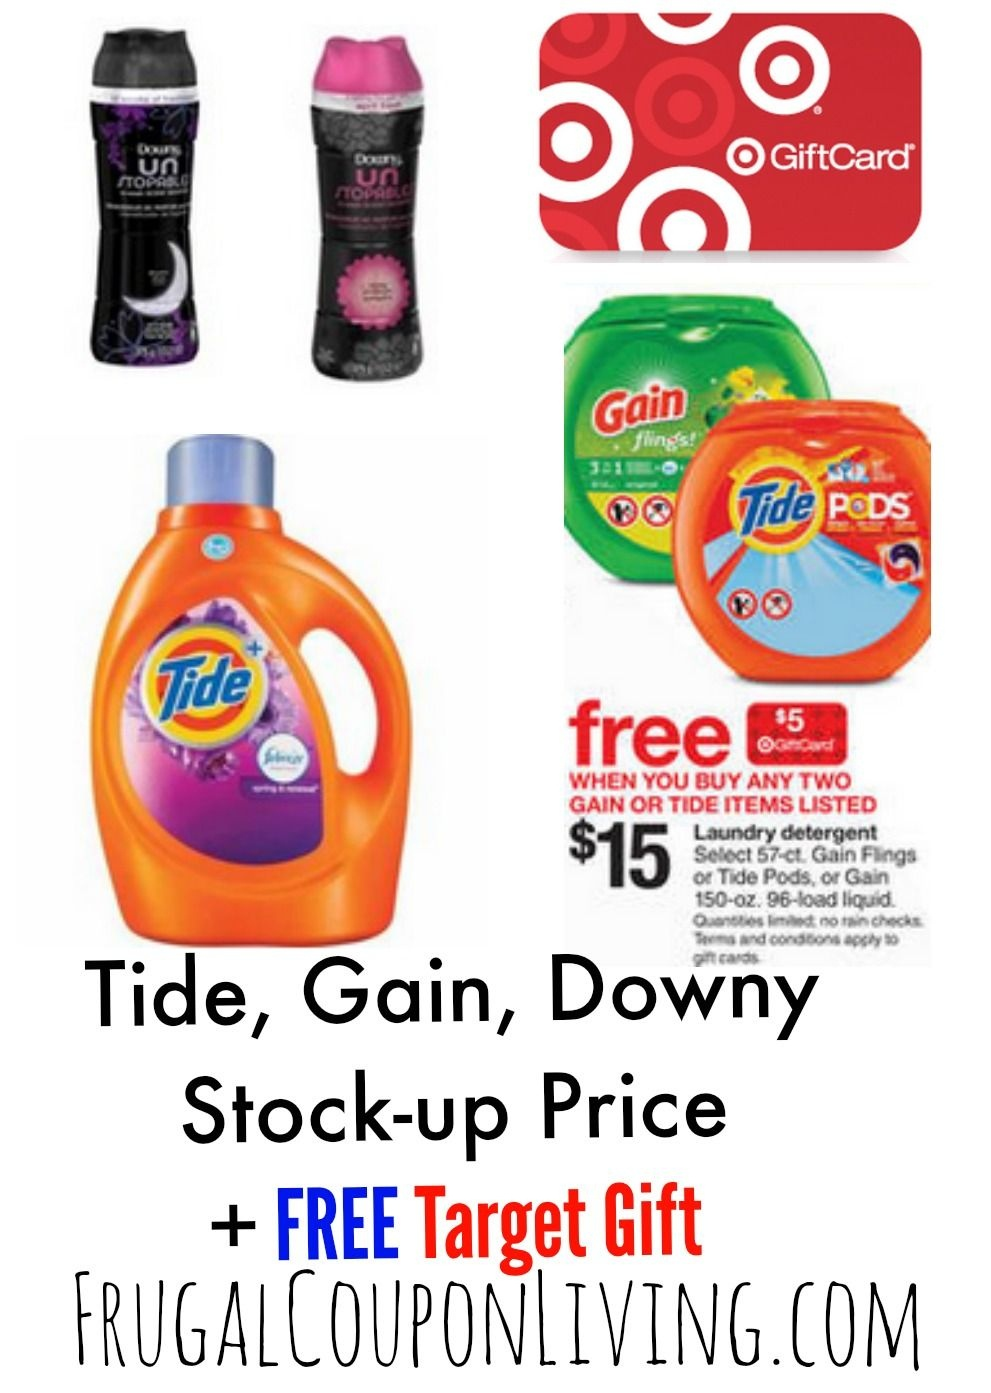 Target Laundry Detergent Deals + Tide & Downy Printable Coupons - Free Printable Gain Laundry Detergent Coupons